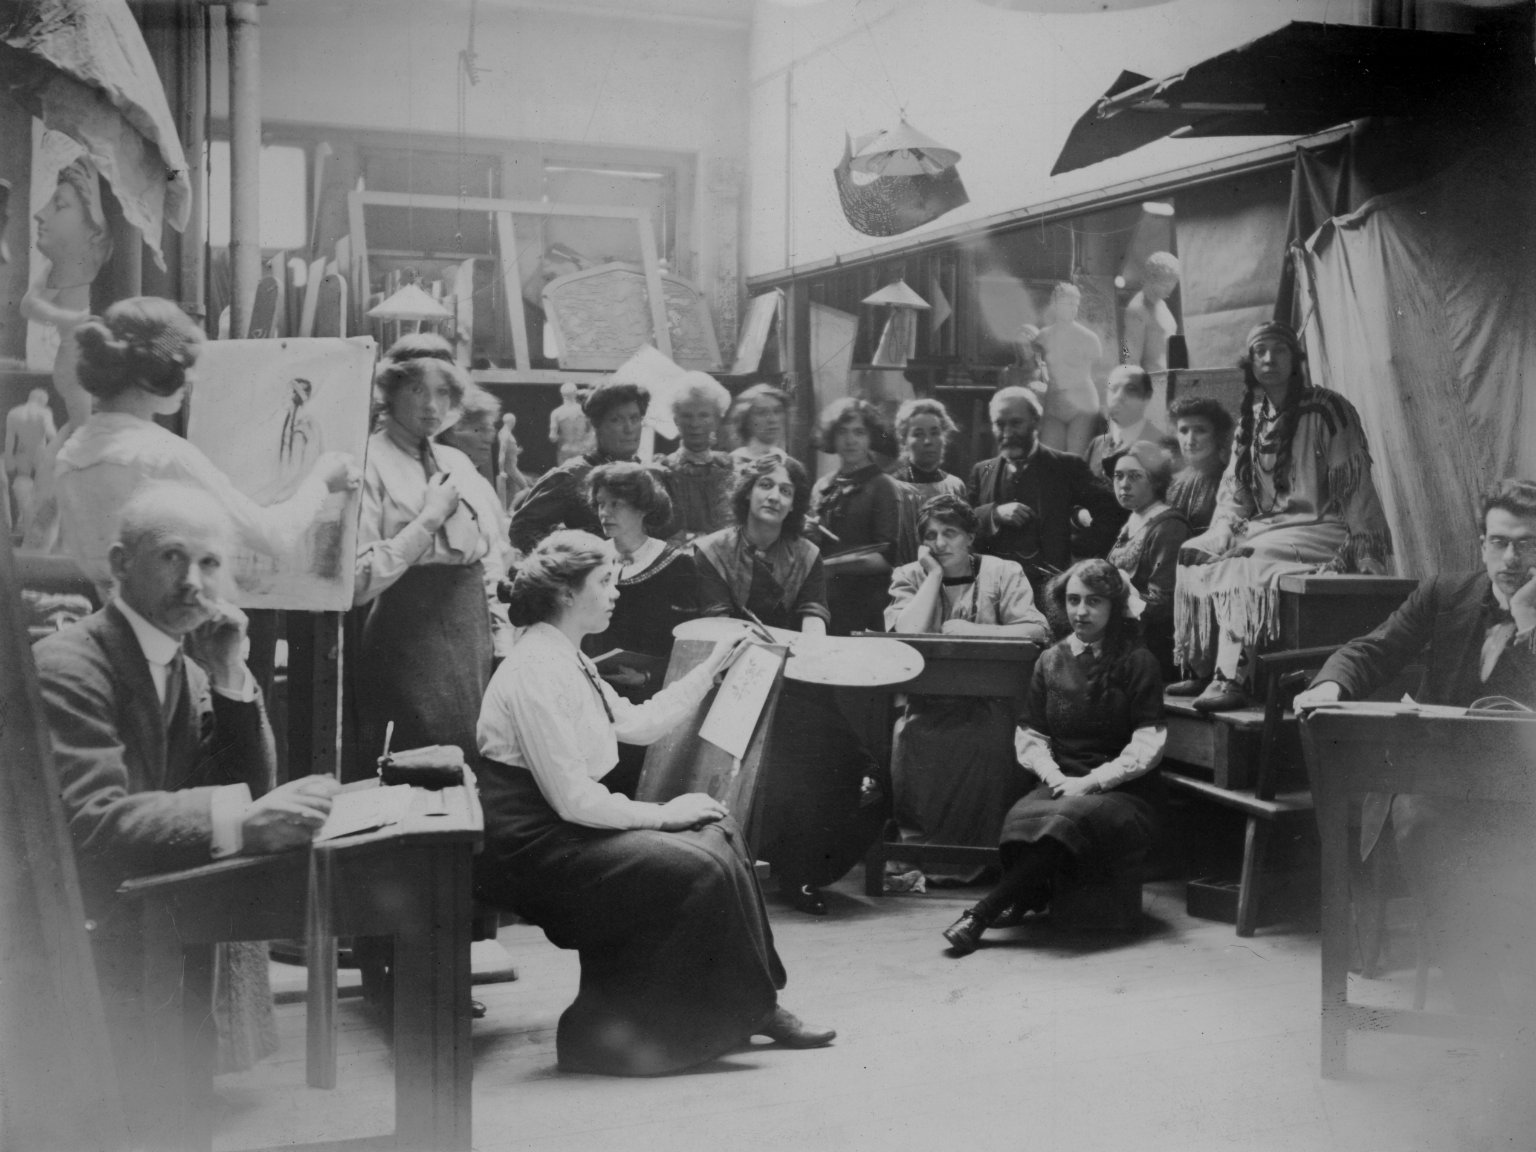 Art class at the Birkbeck Literary and Scientific Institution